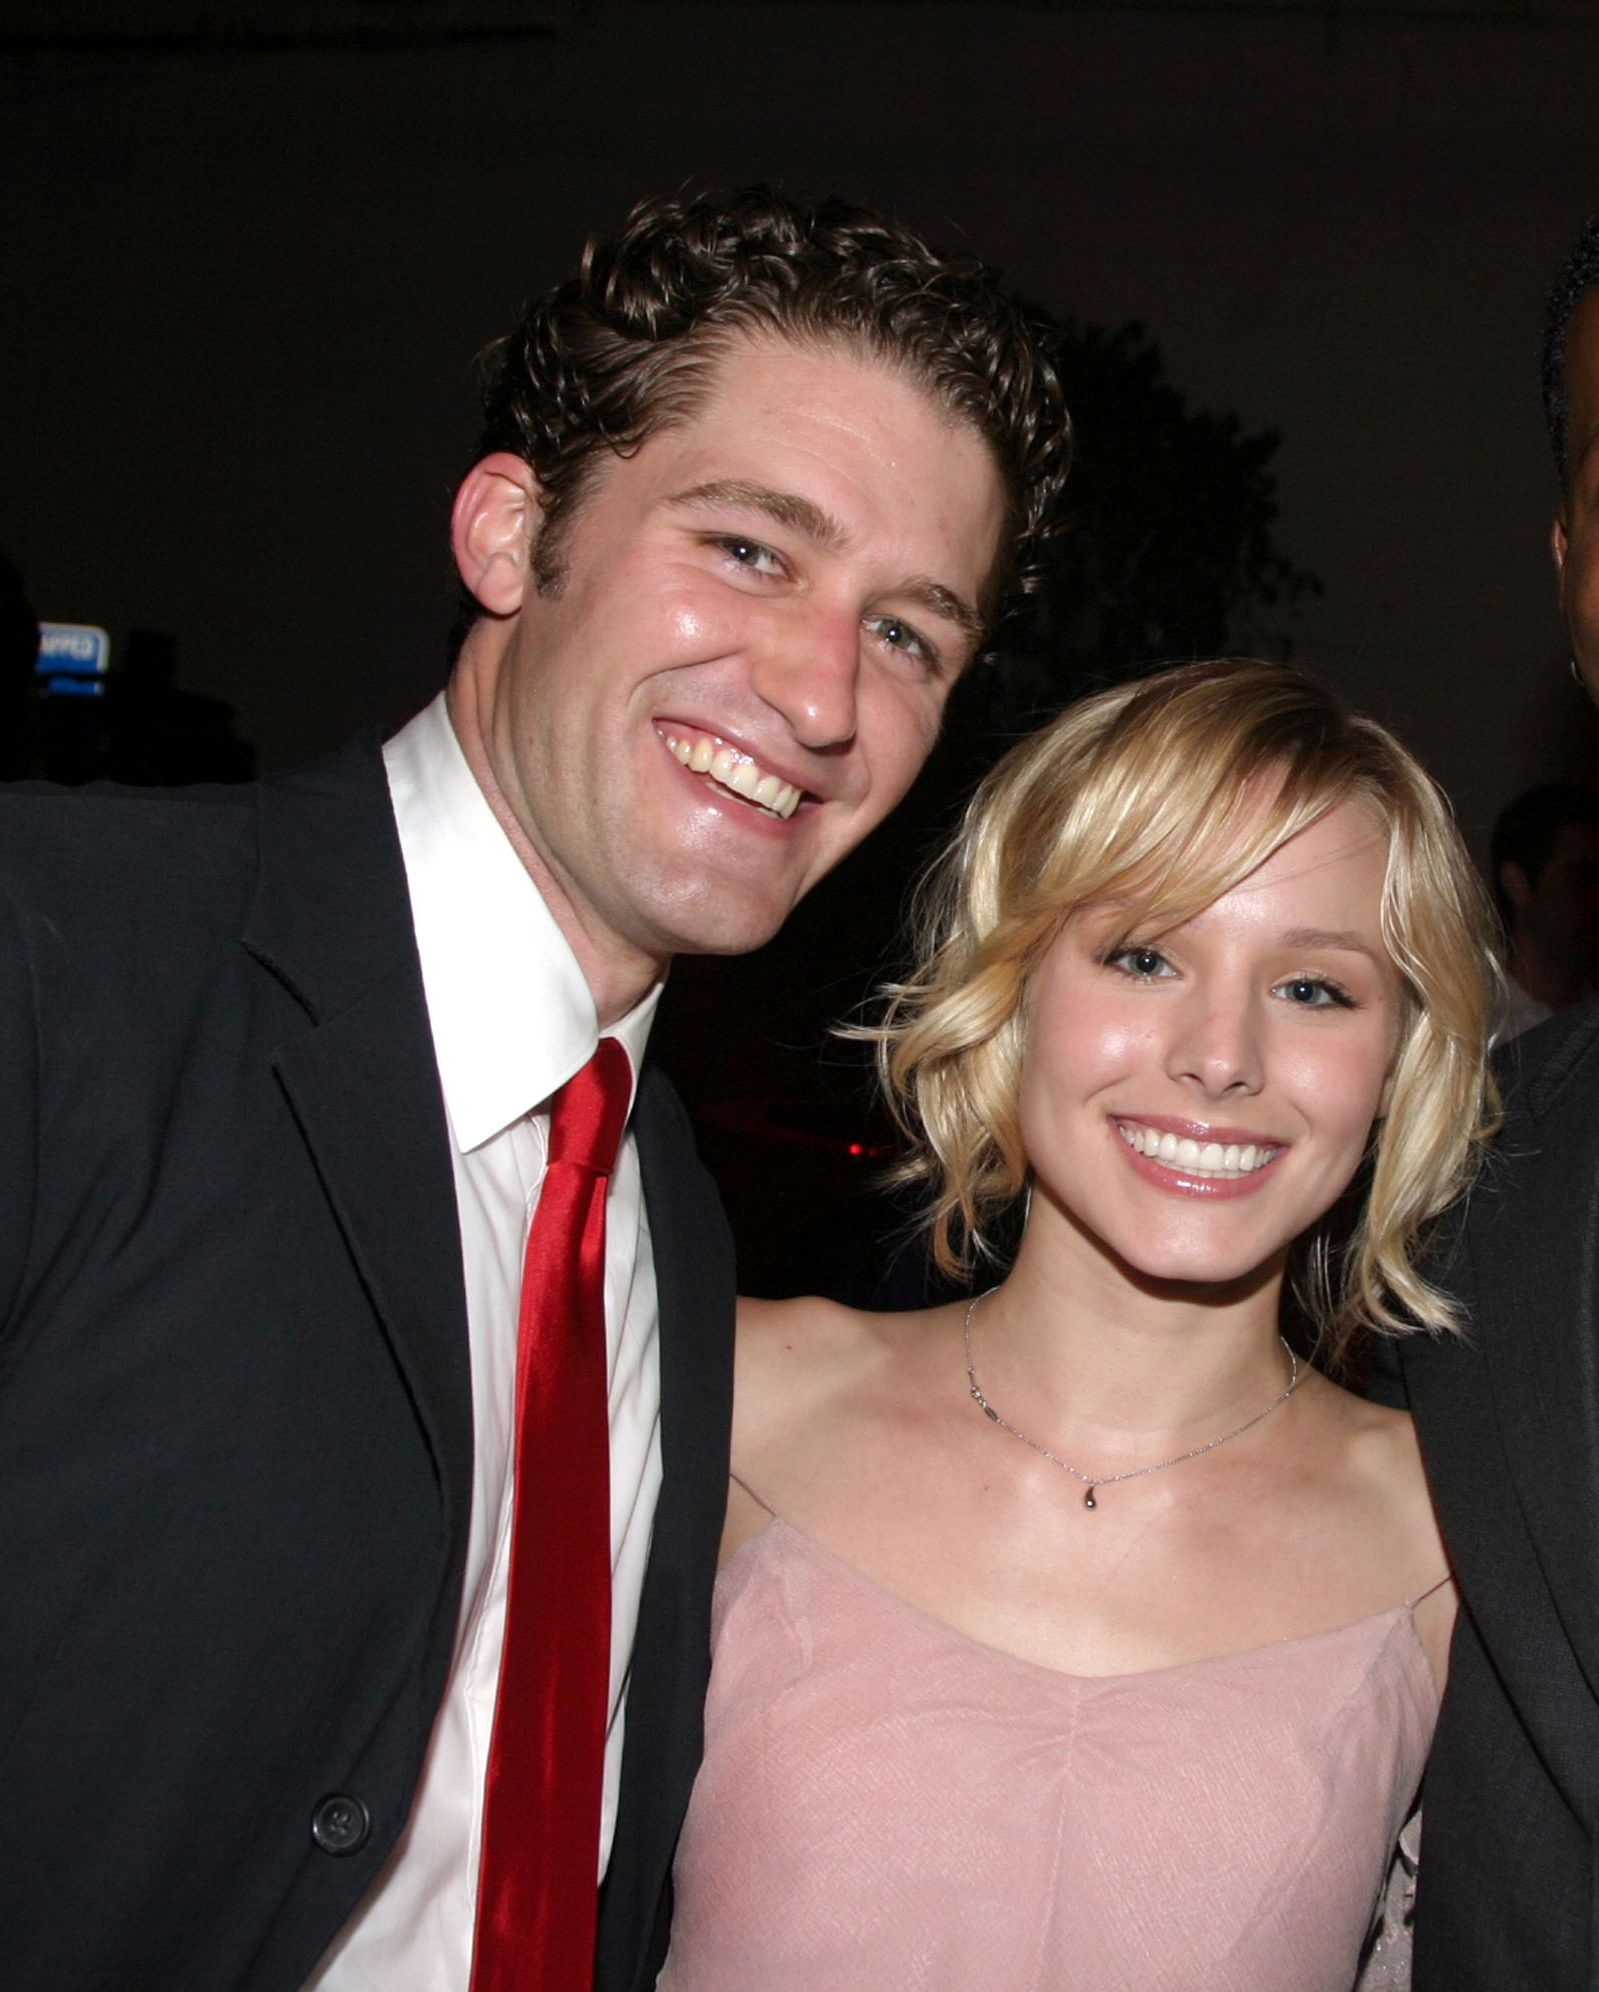 'Hairspray' Opening Night Los Angeles - After Party